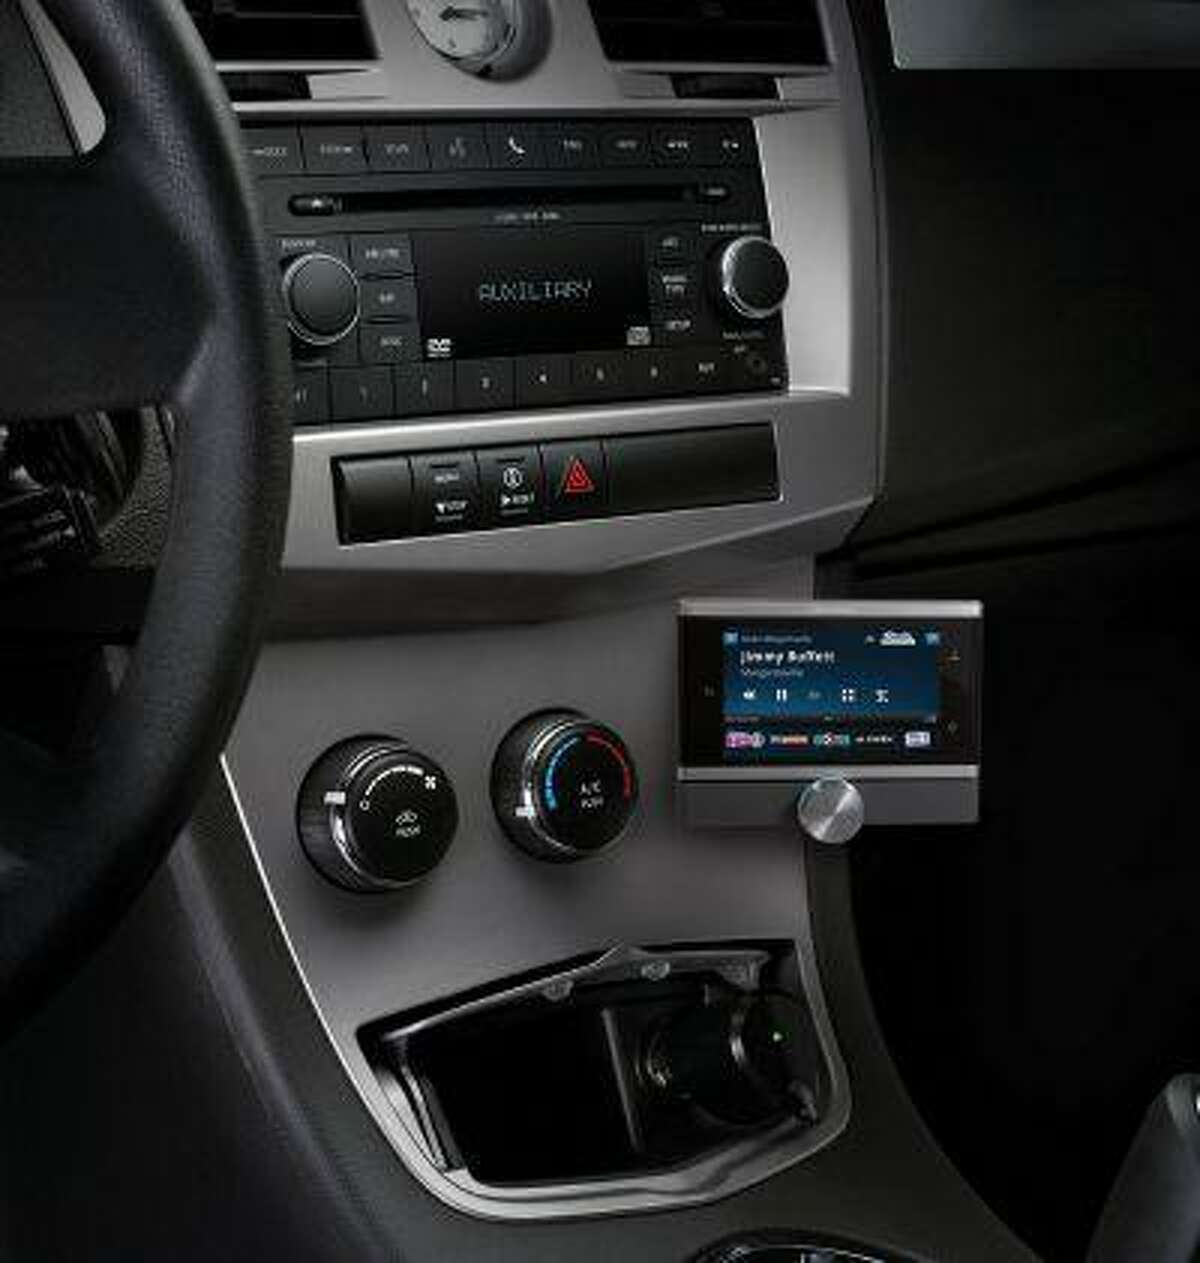 SiriusXM Lynx Portable Radio, the first SiriusXM 2.0 radio with new features and offering an expanded channel lineup. (PRNewsFoto/Sirius XM Radio)